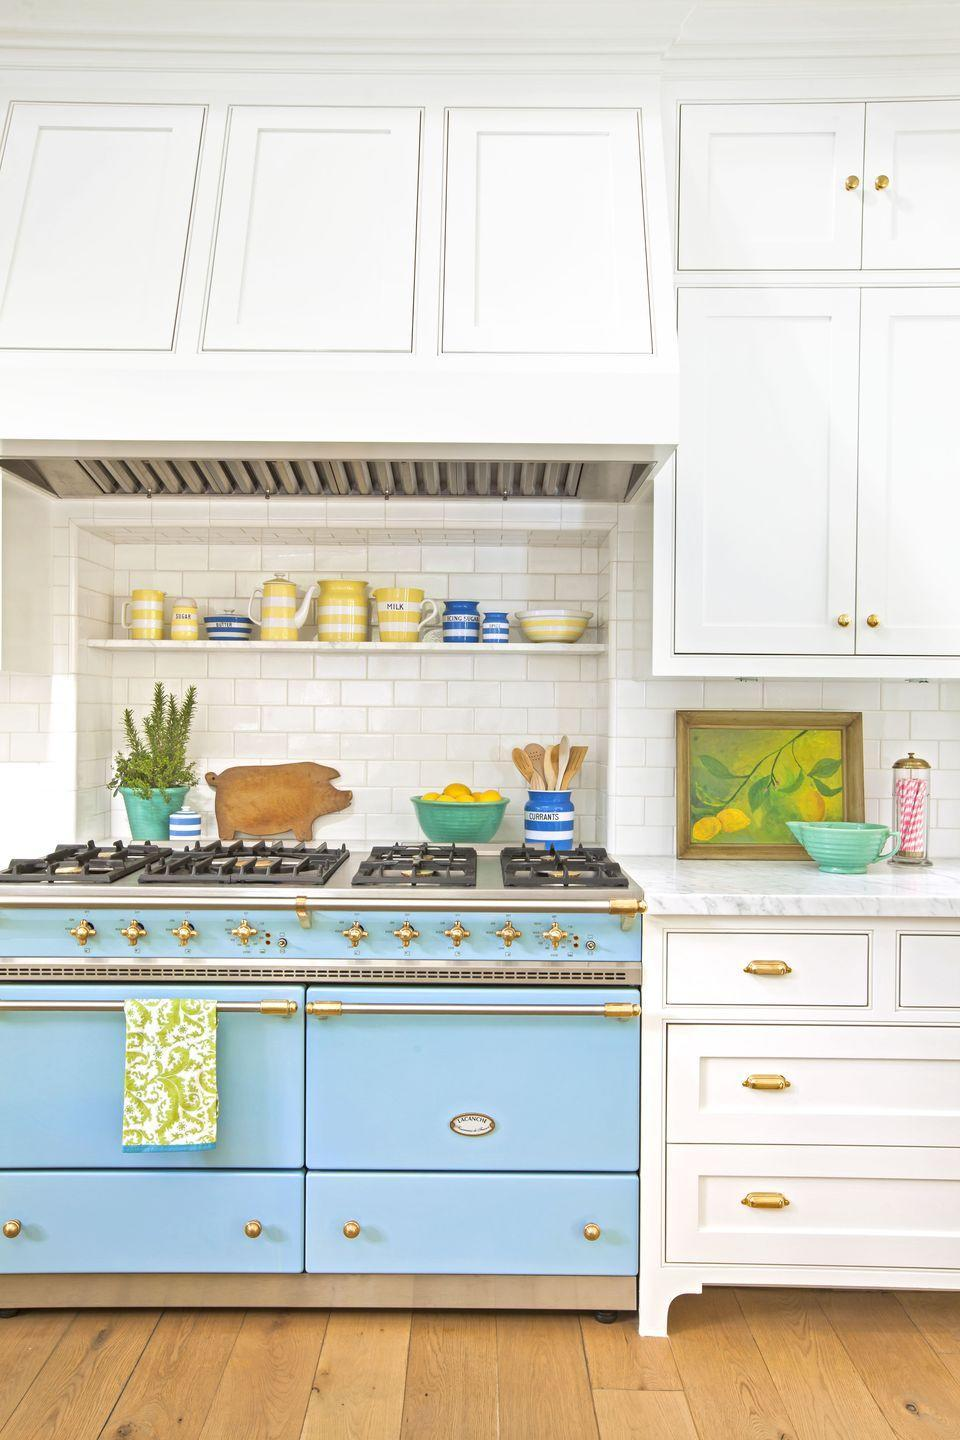 "<p>Appliance makers like Lacanche, Big Chill, and Smeg offer up a host of practical pieces in a number of colors and finishes, which will definitely liven up your range. </p><p><a class=""link rapid-noclick-resp"" href=""https://go.redirectingat.com?id=74968X1596630&url=https%3A%2F%2Fwww.wayfair.com%2Fbrand%2Fbnd%2Fsmeg-b41352.html&sref=https%3A%2F%2Fwww.countryliving.com%2Fhome-design%2Fdecorating-ideas%2Fg3988%2Fkitchen-trends%2F"" rel=""nofollow noopener"" target=""_blank"" data-ylk=""slk:SHOP SMEG APPLIANCES"">SHOP SMEG APPLIANCES</a></p>"